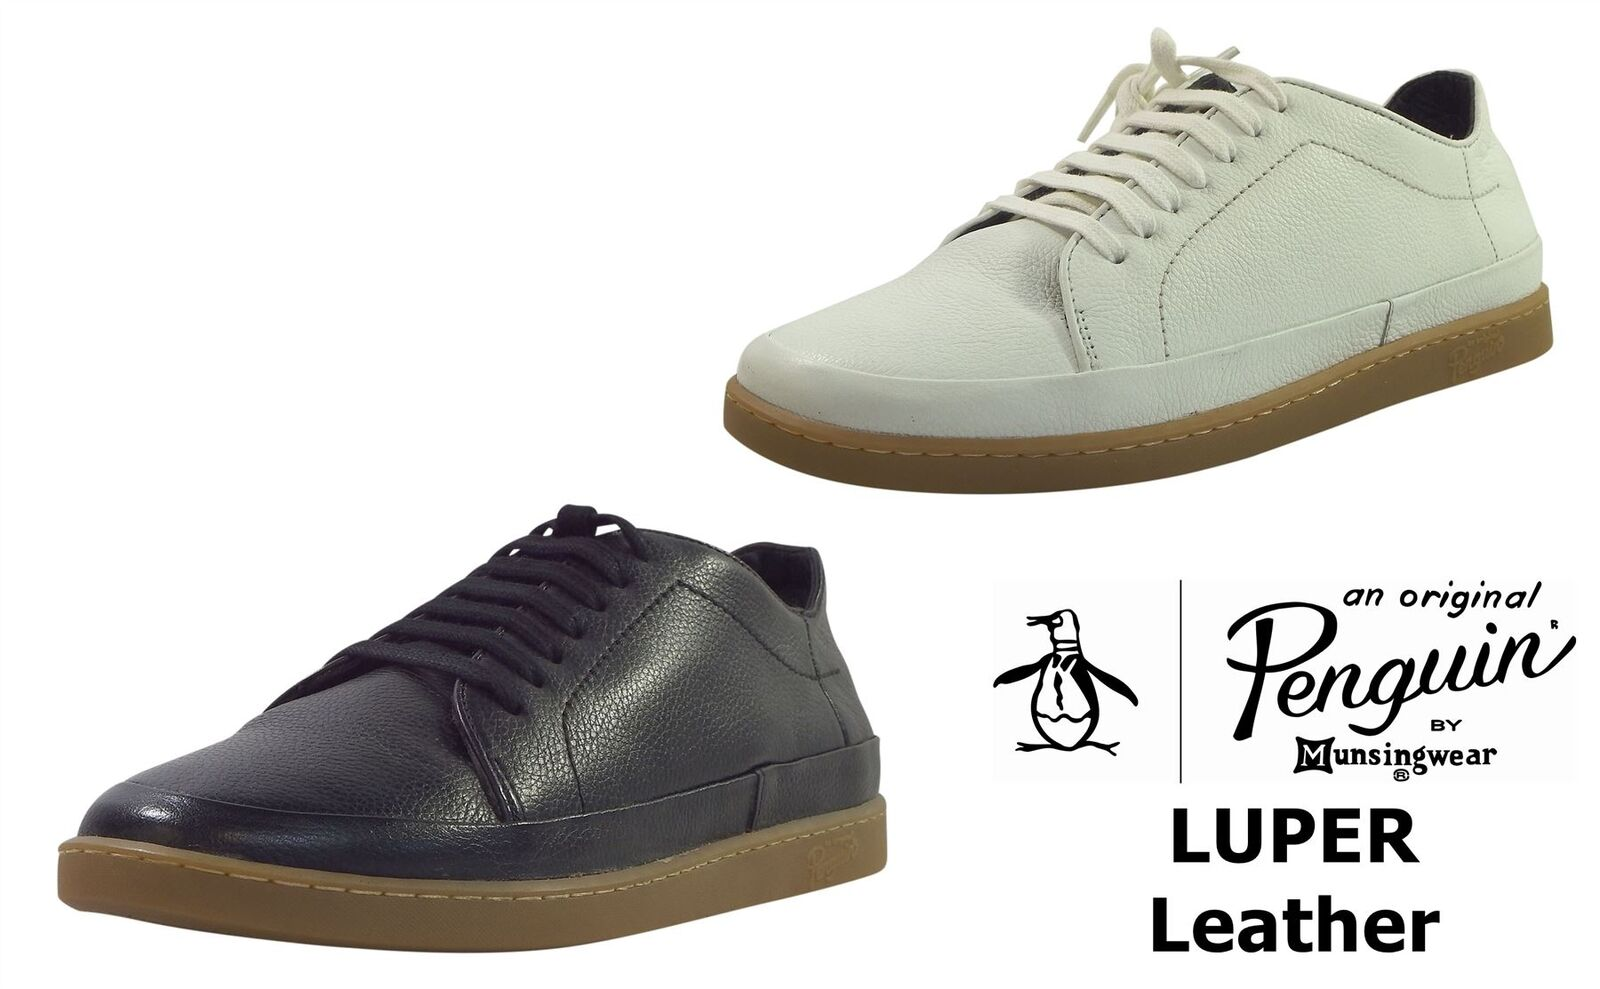 Penguin Mens Luper Thick Leather 7 Eye Casual Sneakers Shoes